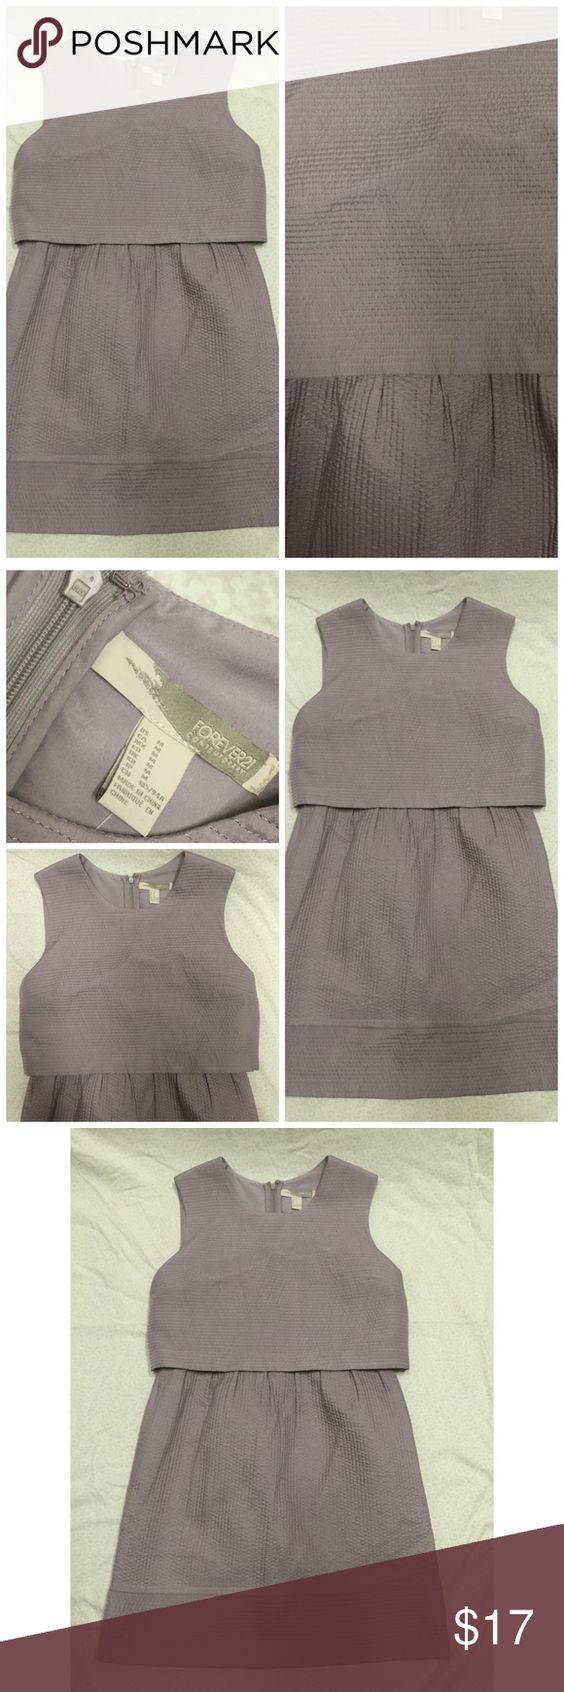 Lavender dress This is a modern inspired lavender dress. Size medium. Great condition. Dresses